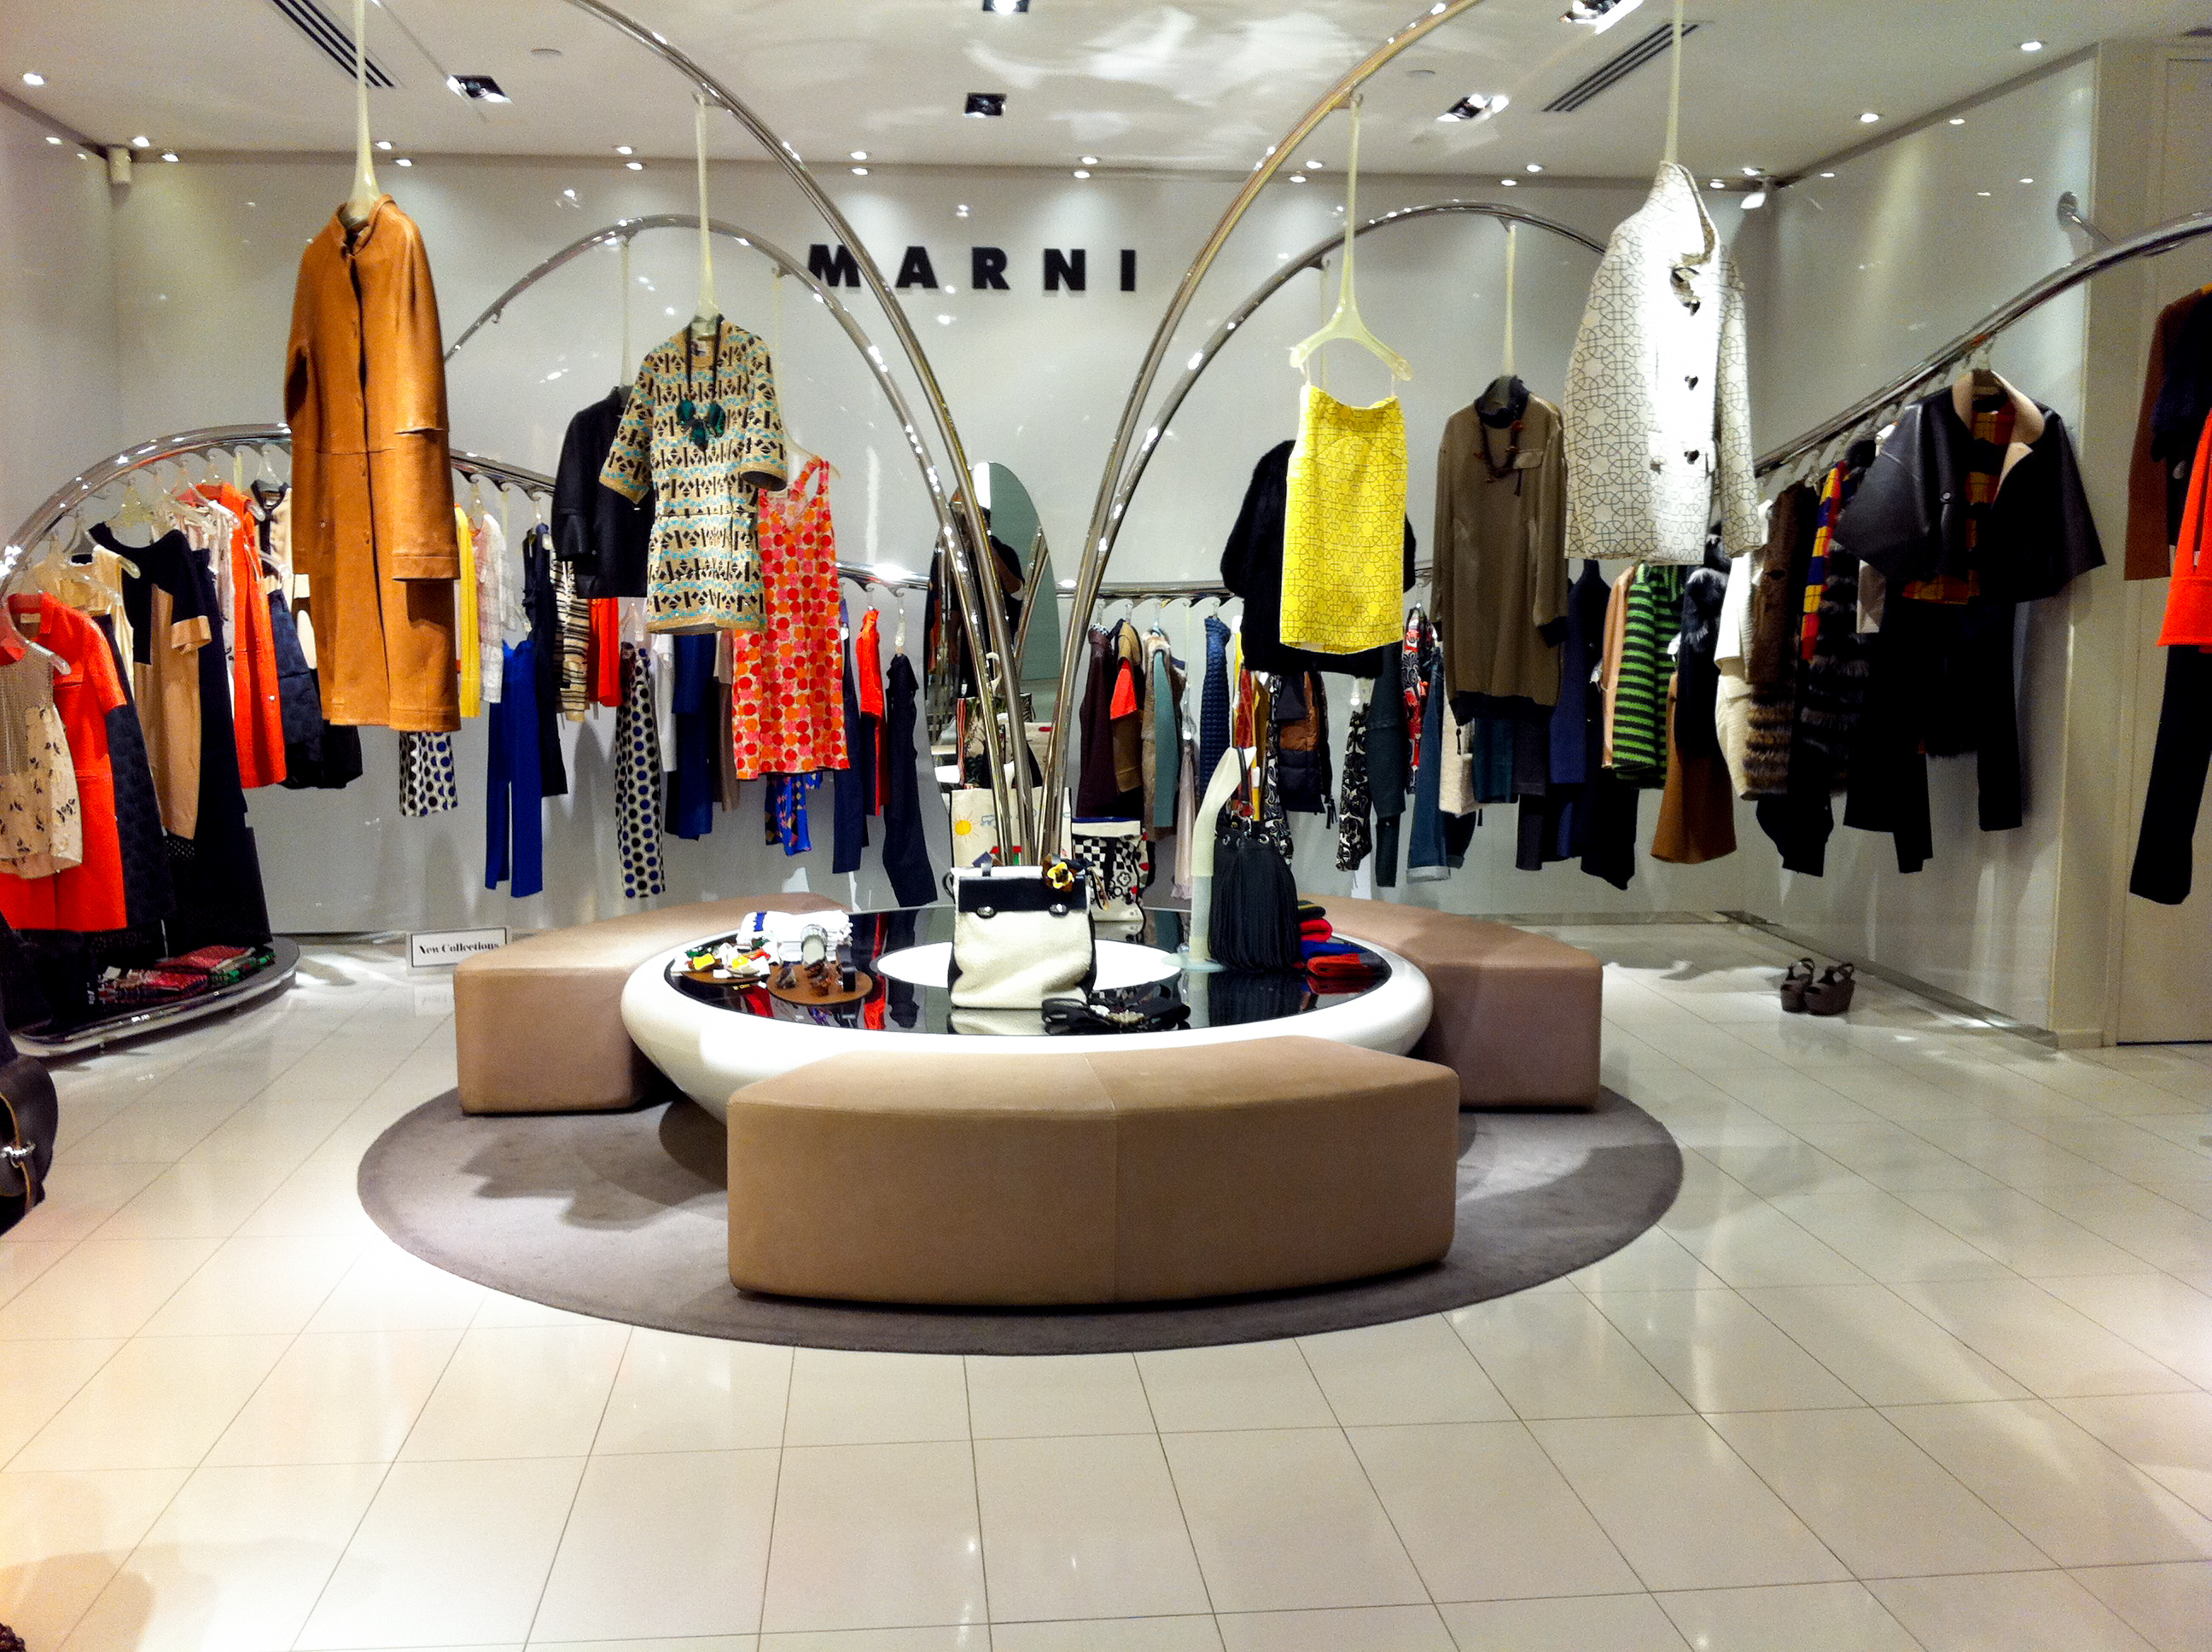 Marni fashion display in Pacific Place Hong Kong. Photo by alphacityguides.